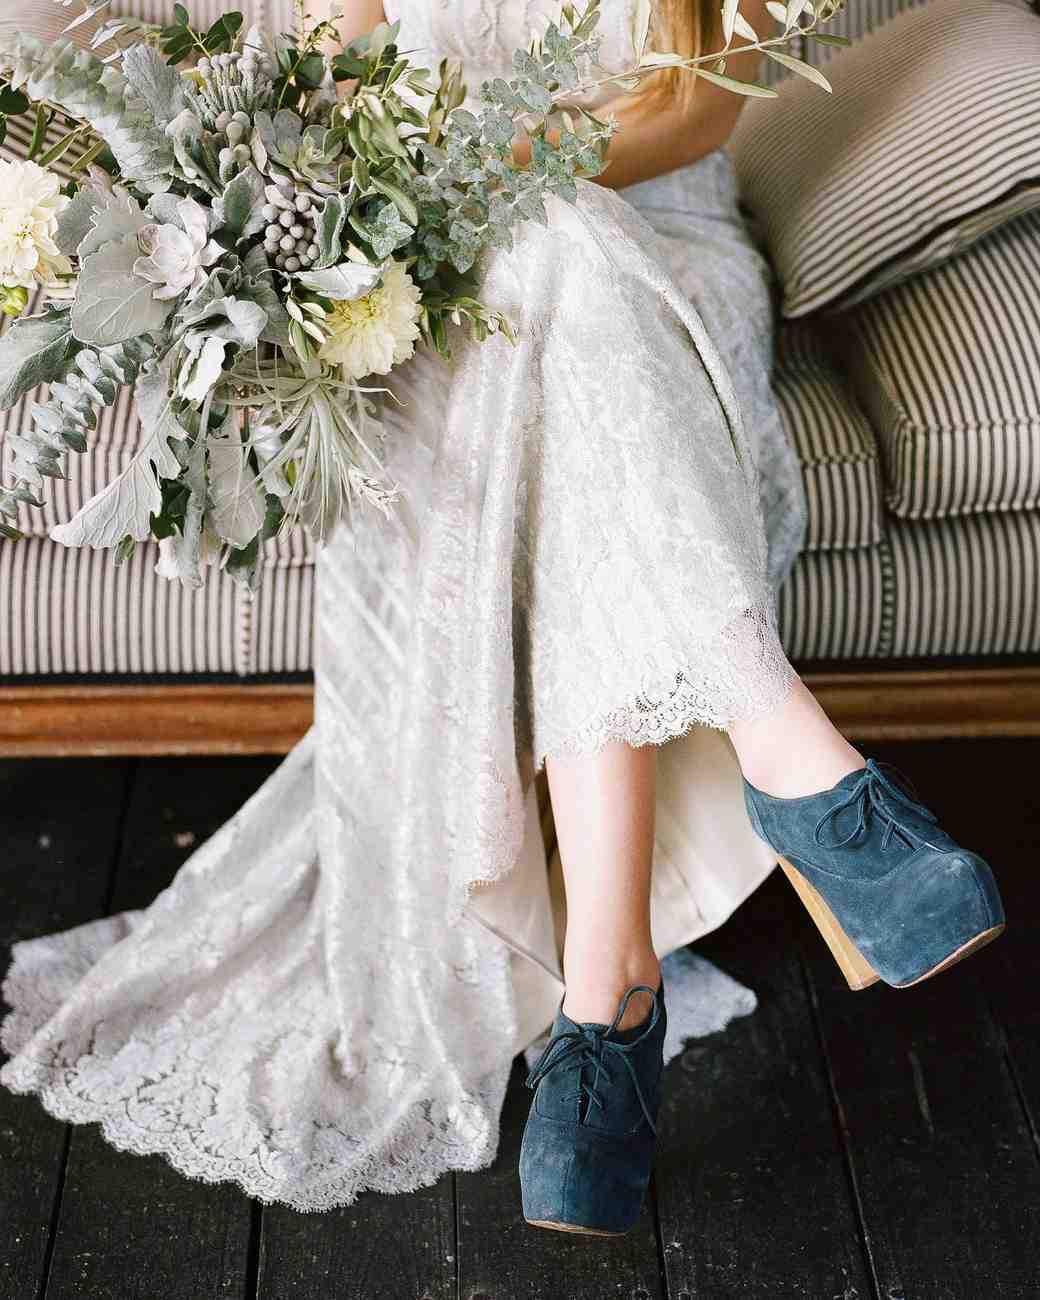 f9f27e4230ab 25 Nontraditional Wedding Shoe Ideas from Stylish Brides